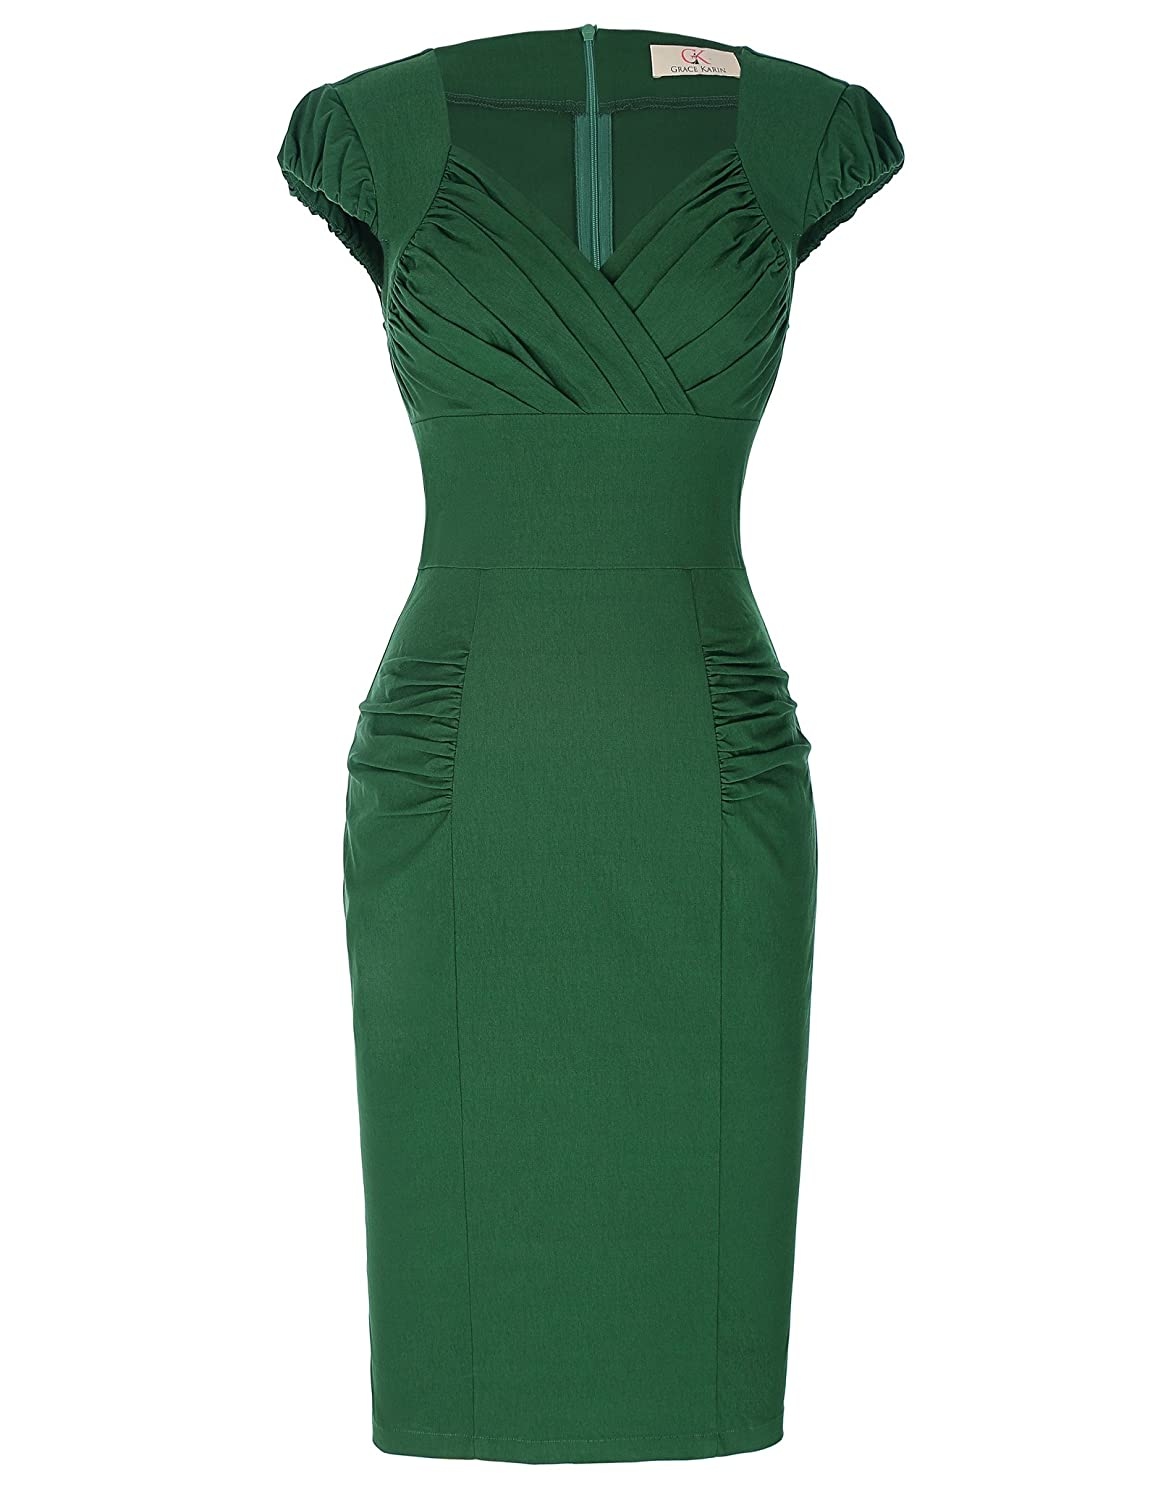 Vintage 50s Dresses: Best 1950s Dress Styles GRACE KARIN Womens 50s Vintage Pencil Dress Cap Sleeve Wiggle Dress CL7597 $28.99 AT vintagedancer.com